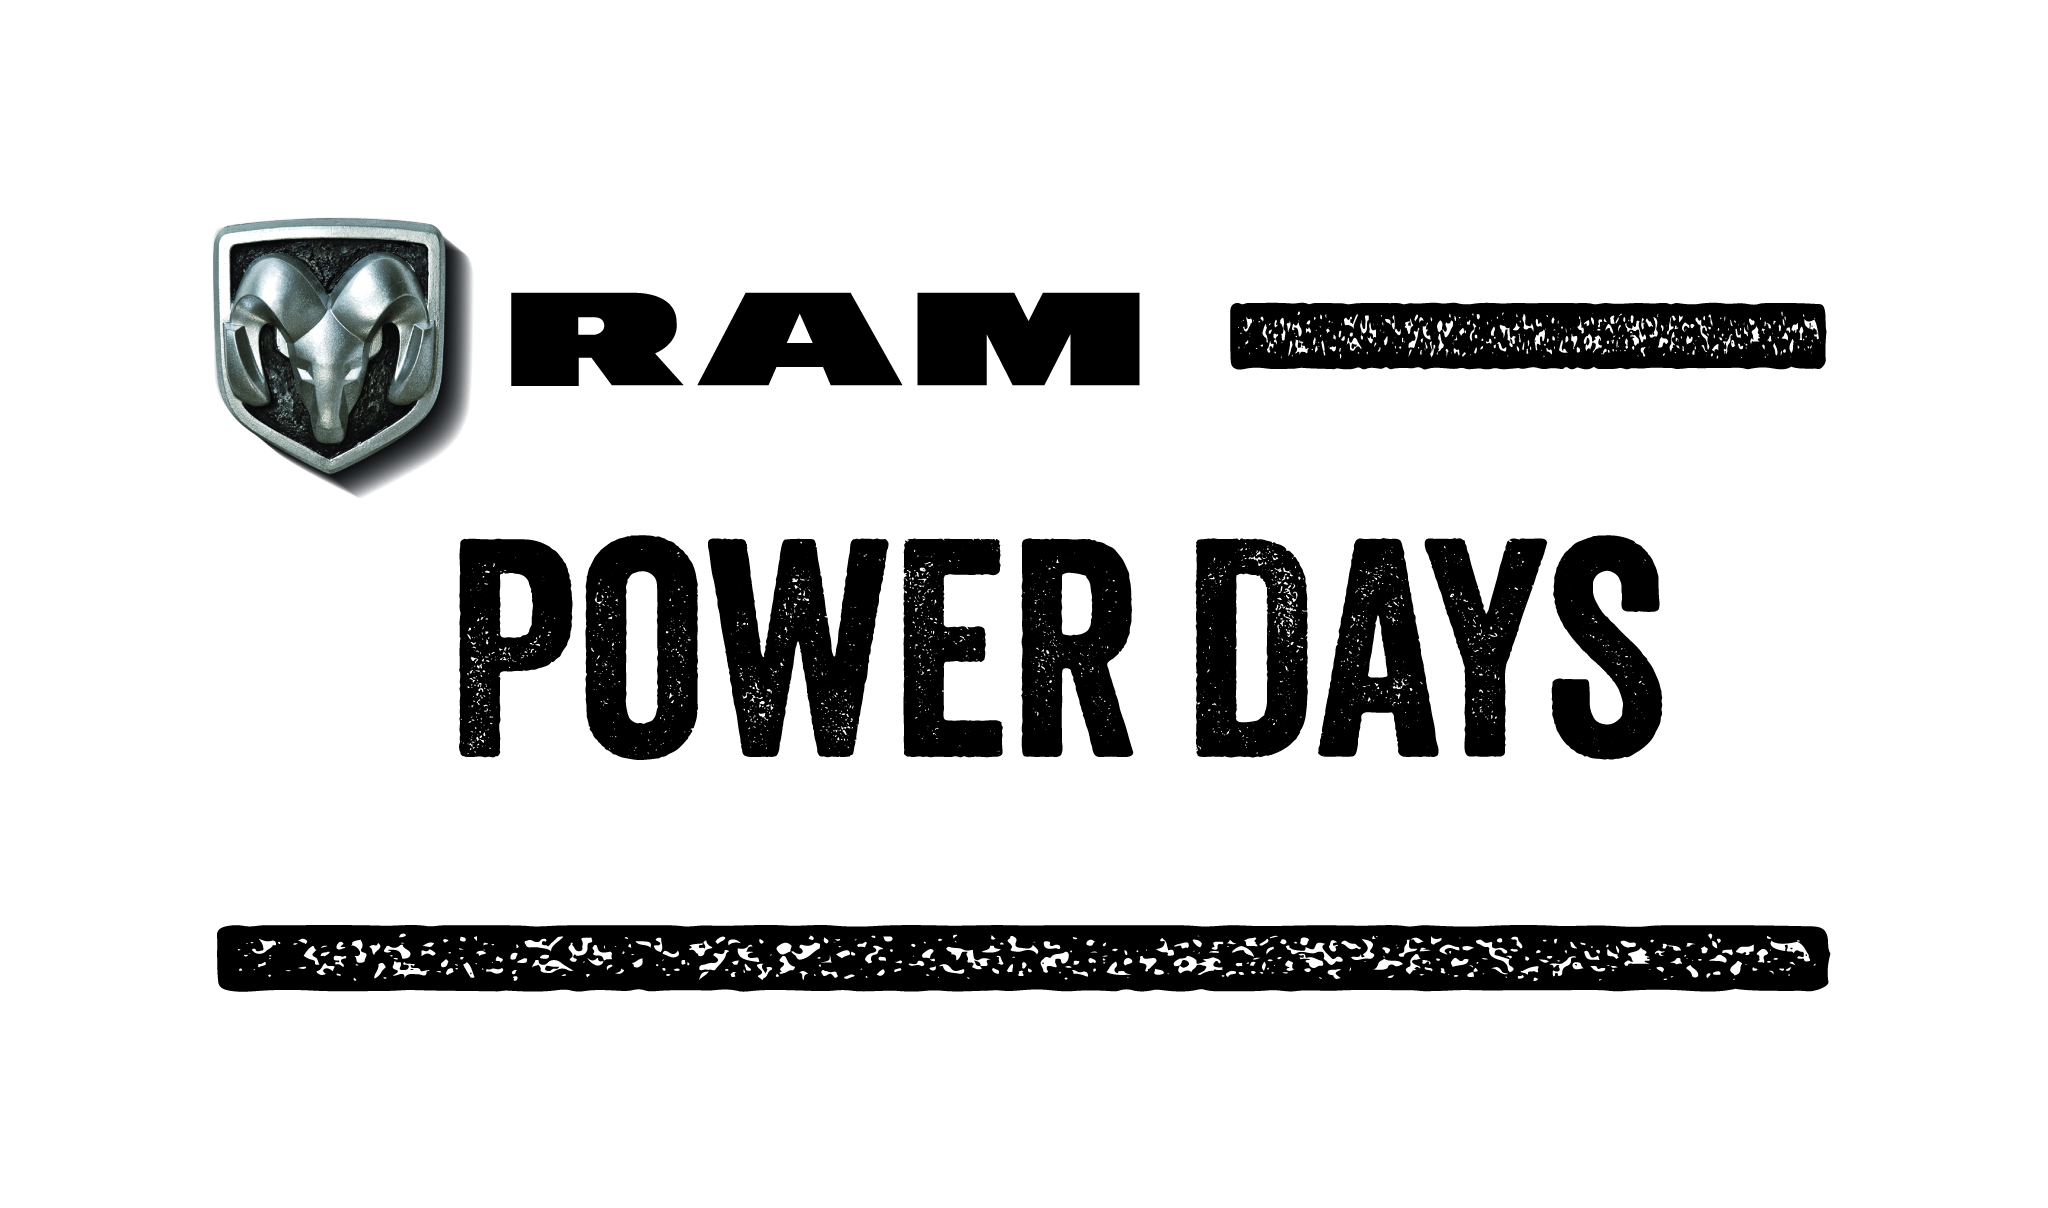 Ram Power Days in Middlebury, VT